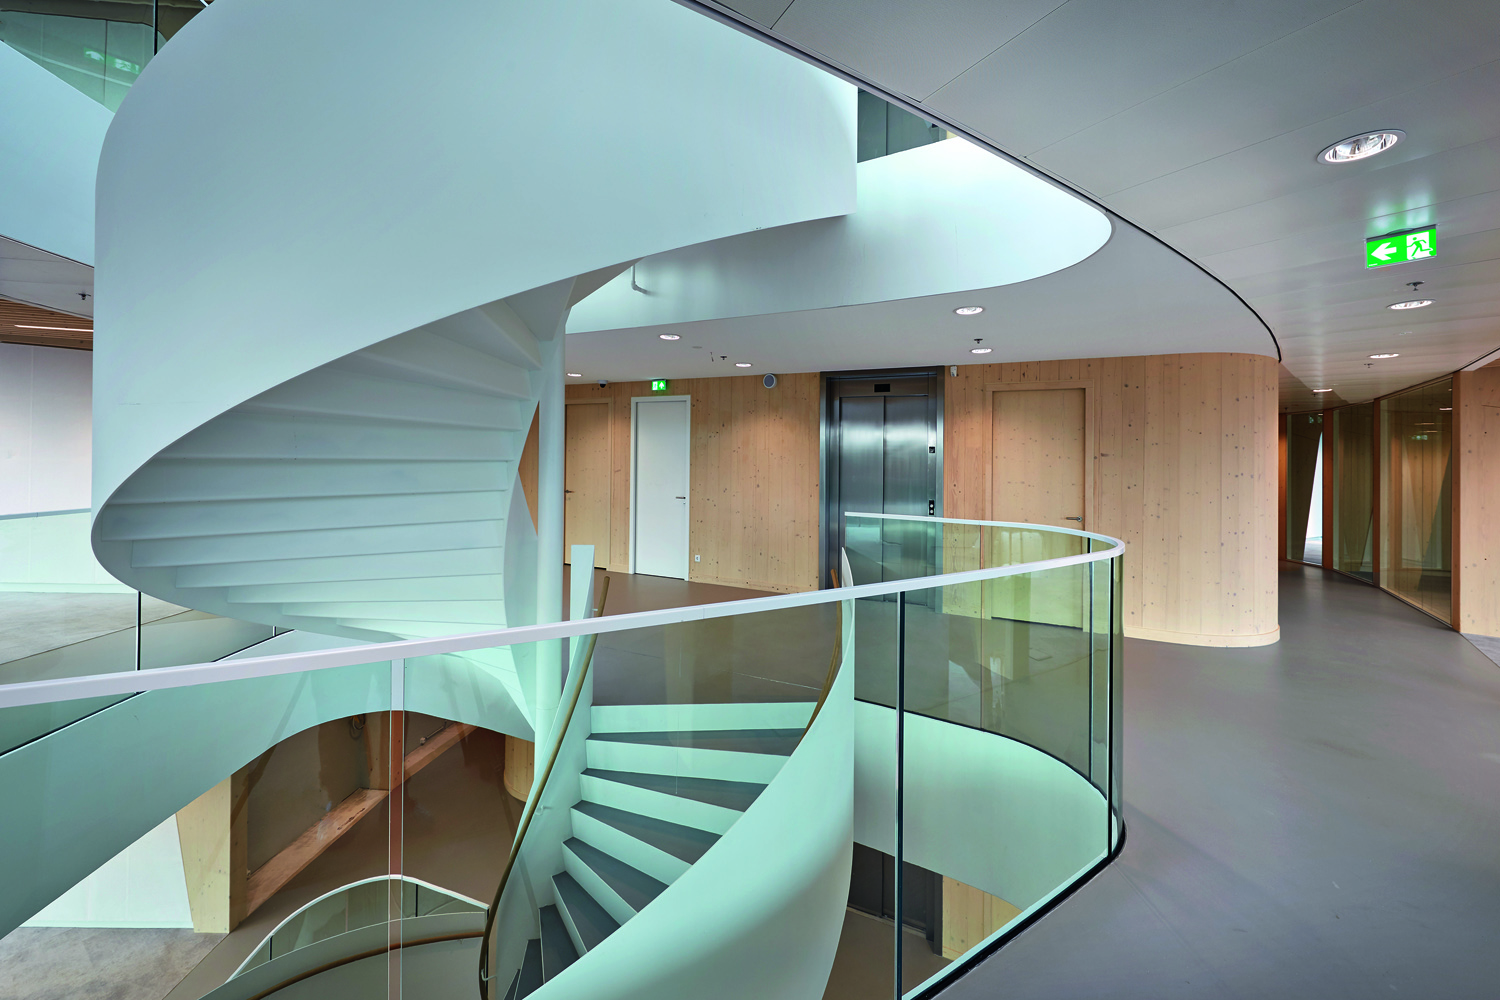 © Bert Rietberg, courtesy Ex Interiors The impressive, centrally-located spiral staircase is an invitation to take the stairs and limit elevator use.